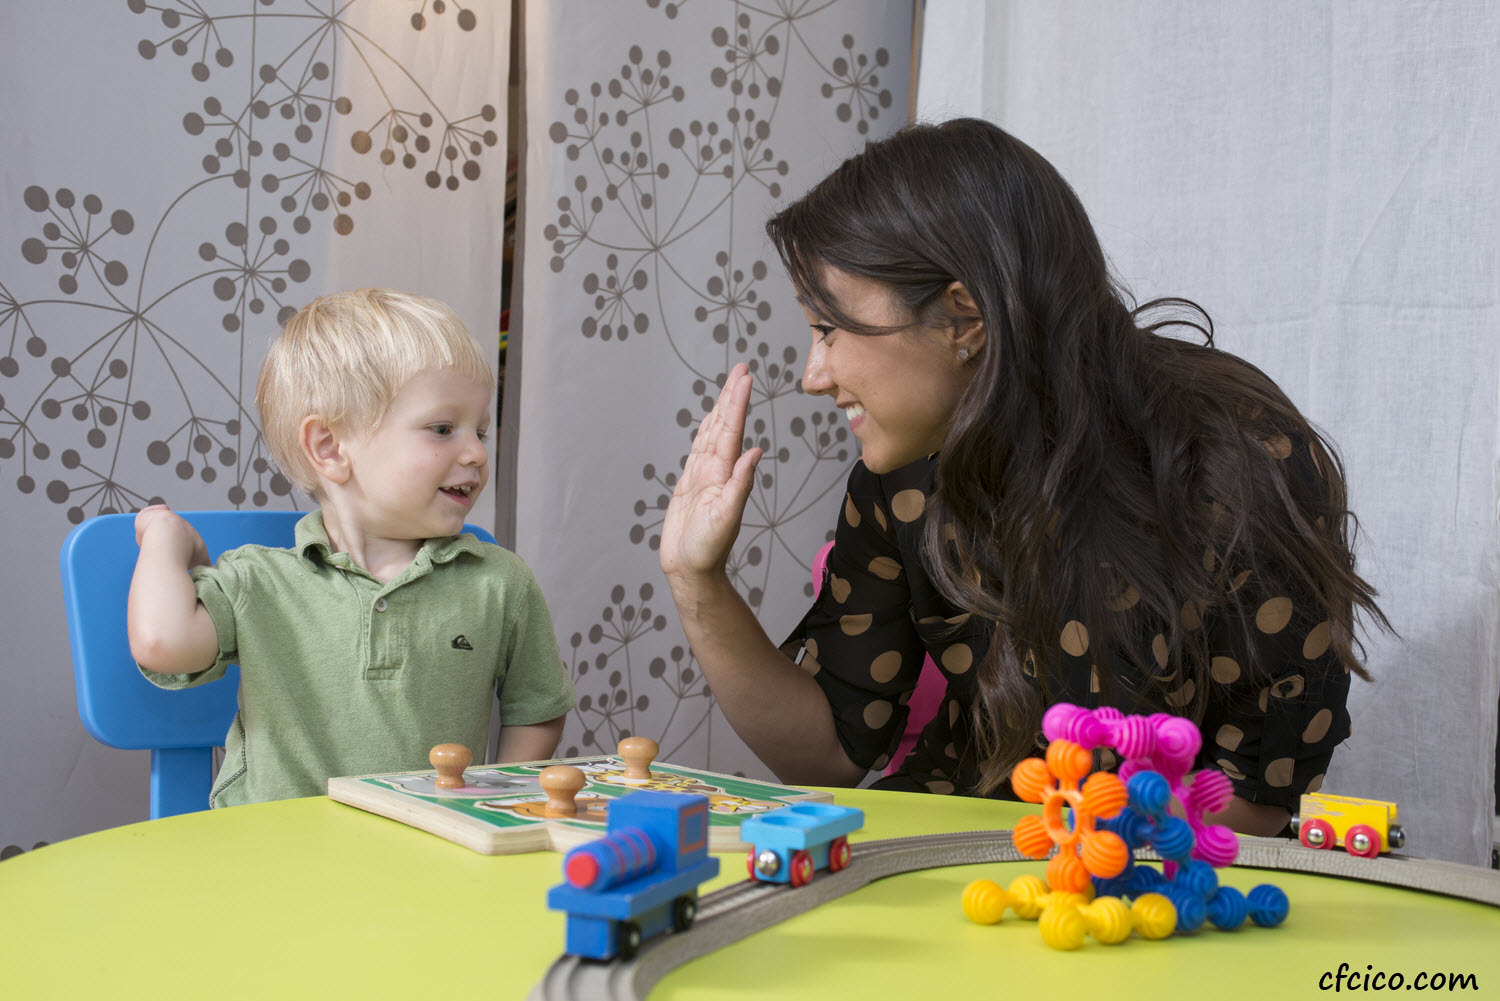 Have you thought How to Help Your Child with Autism to Make Friends?